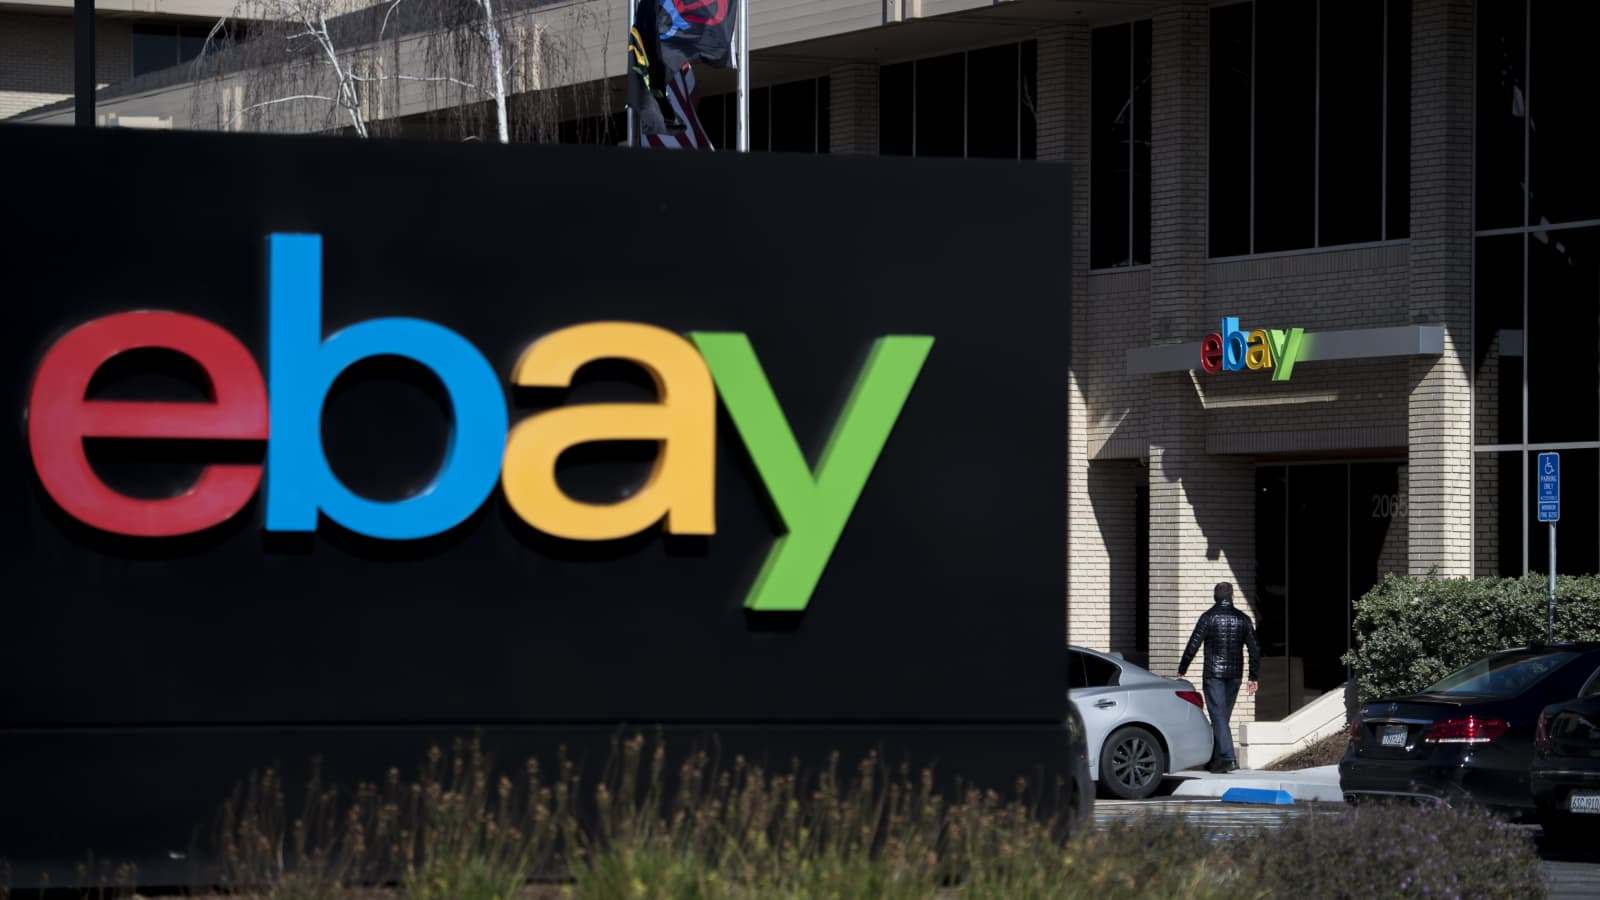 Ex Ebay Employees Sent Bloody Pig Mask To Intimidate Critics Feds Say